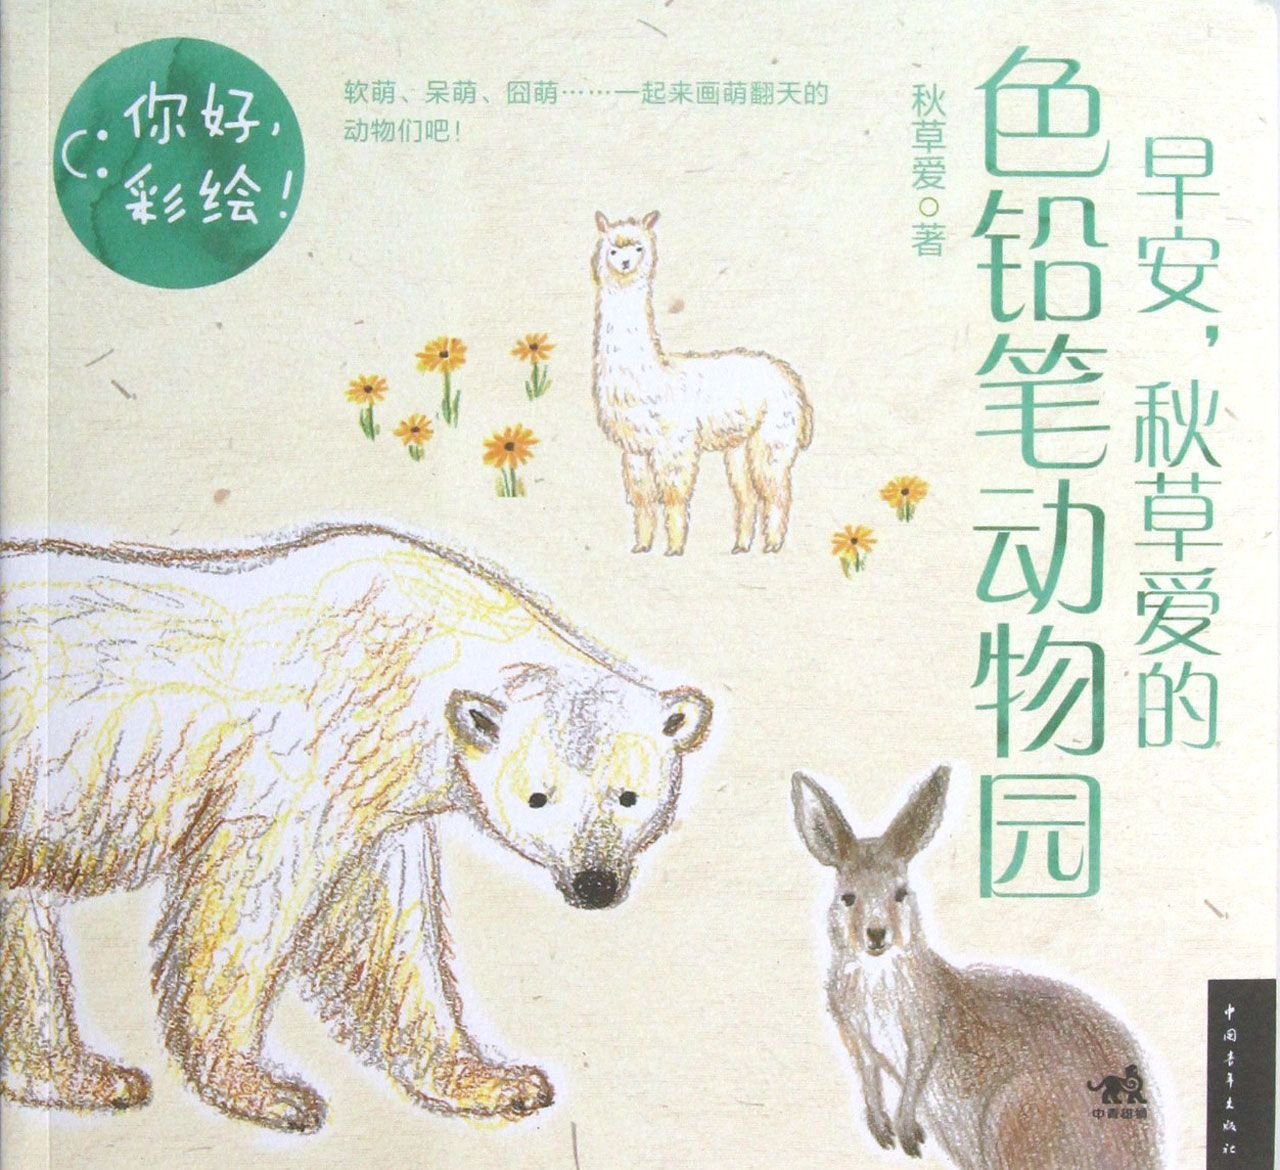 Good Morning, Zoo in Autumn Grasss Love by Colored Pencil (Chinese Edition) ebook